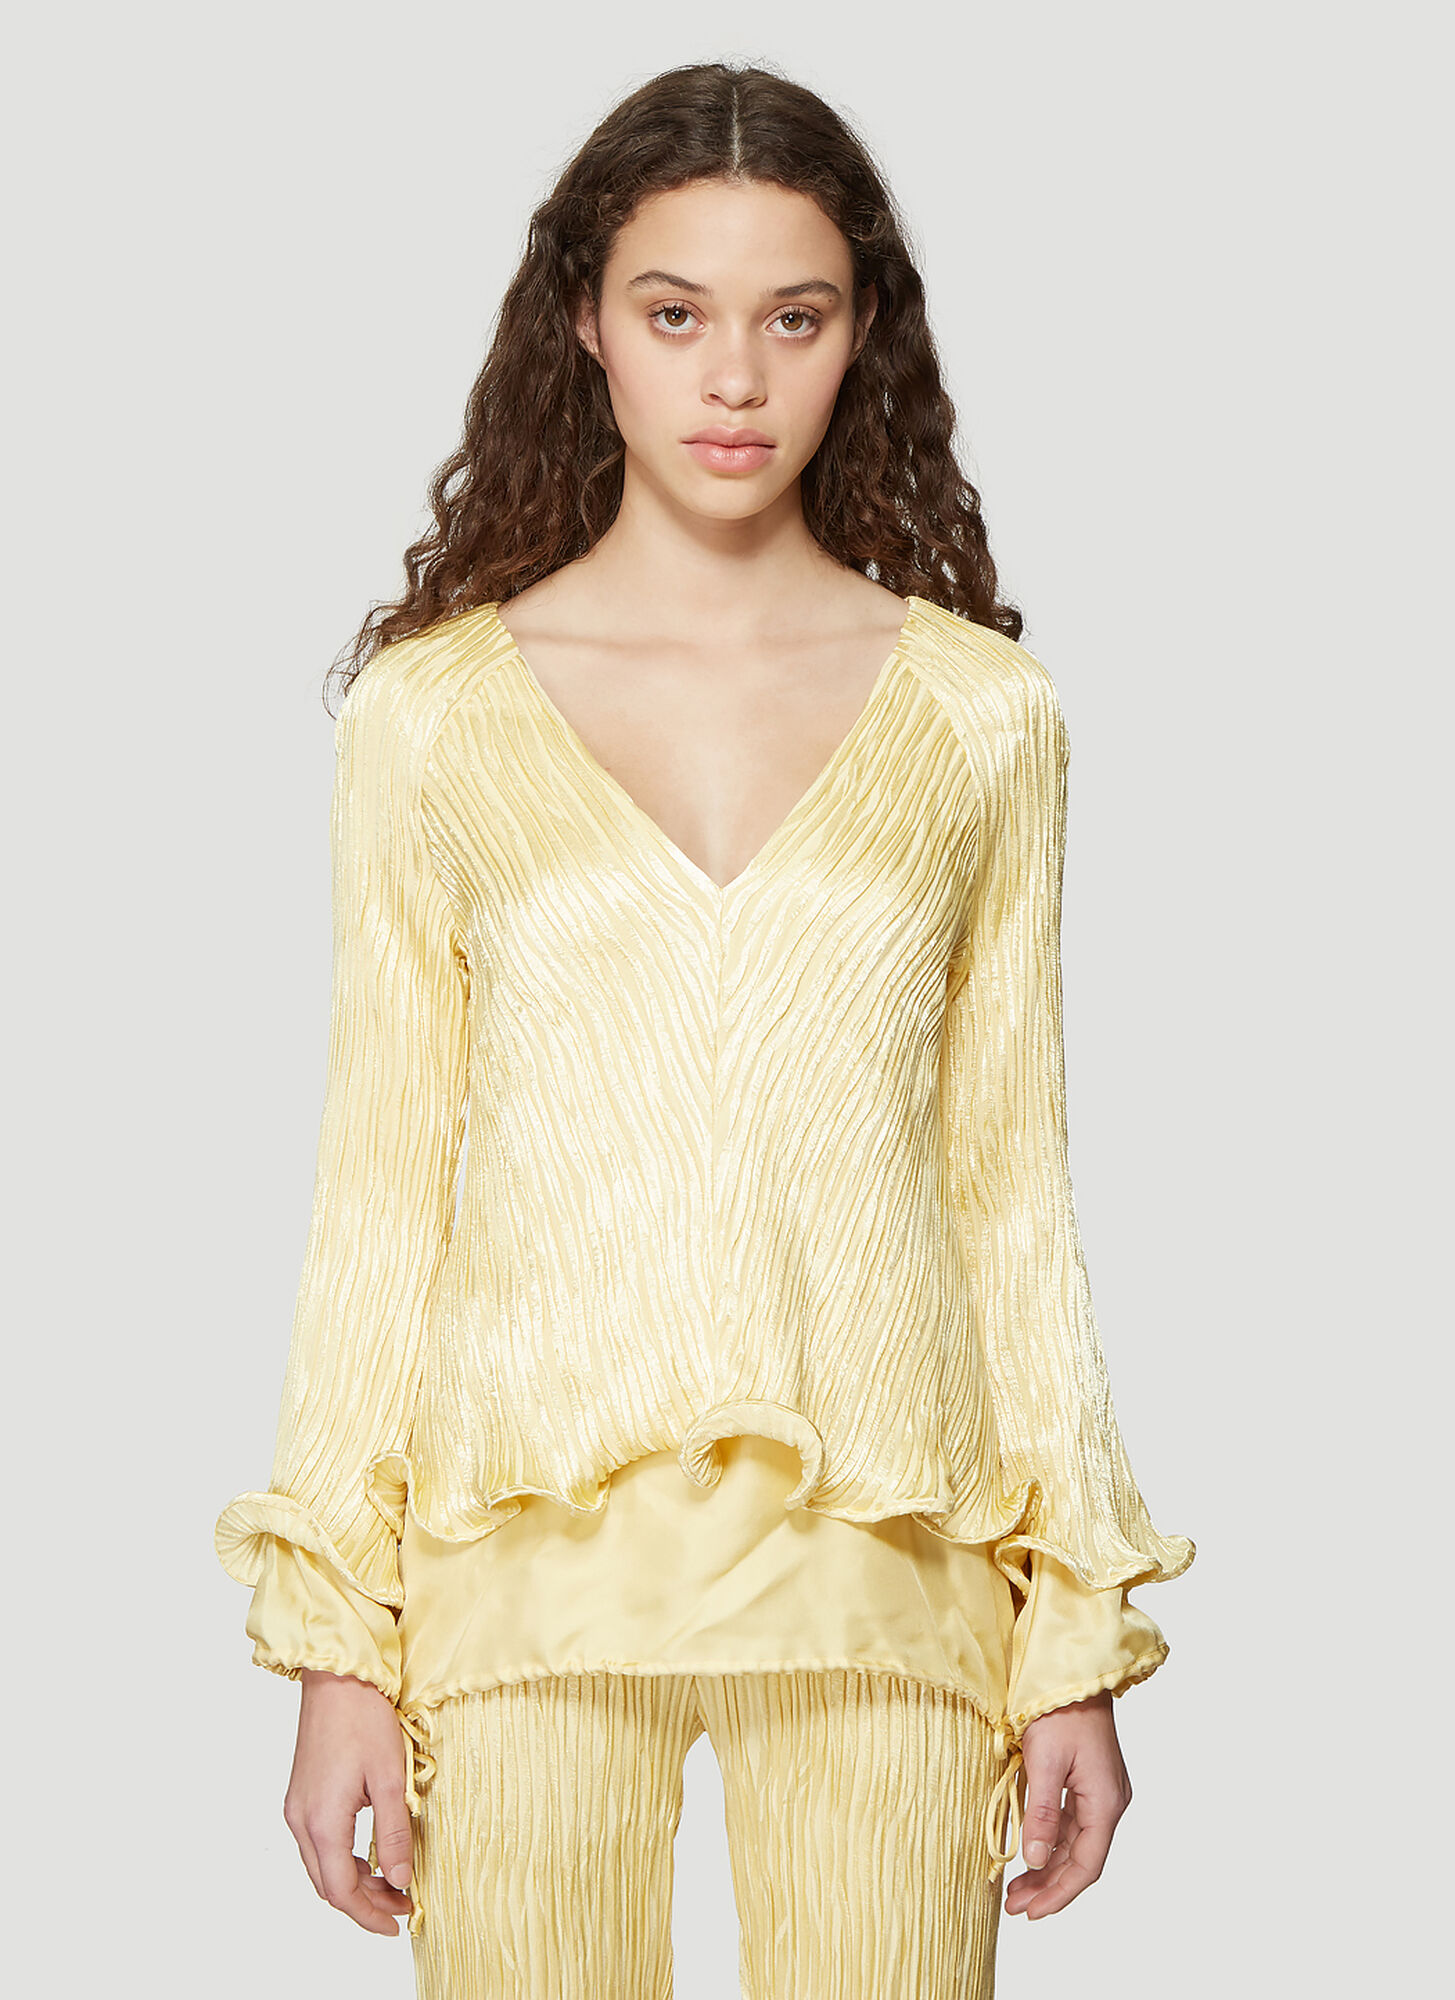 Sies Marjan Freida Crinkled Satin Linen V-Neck Ruffle Top in Yellow